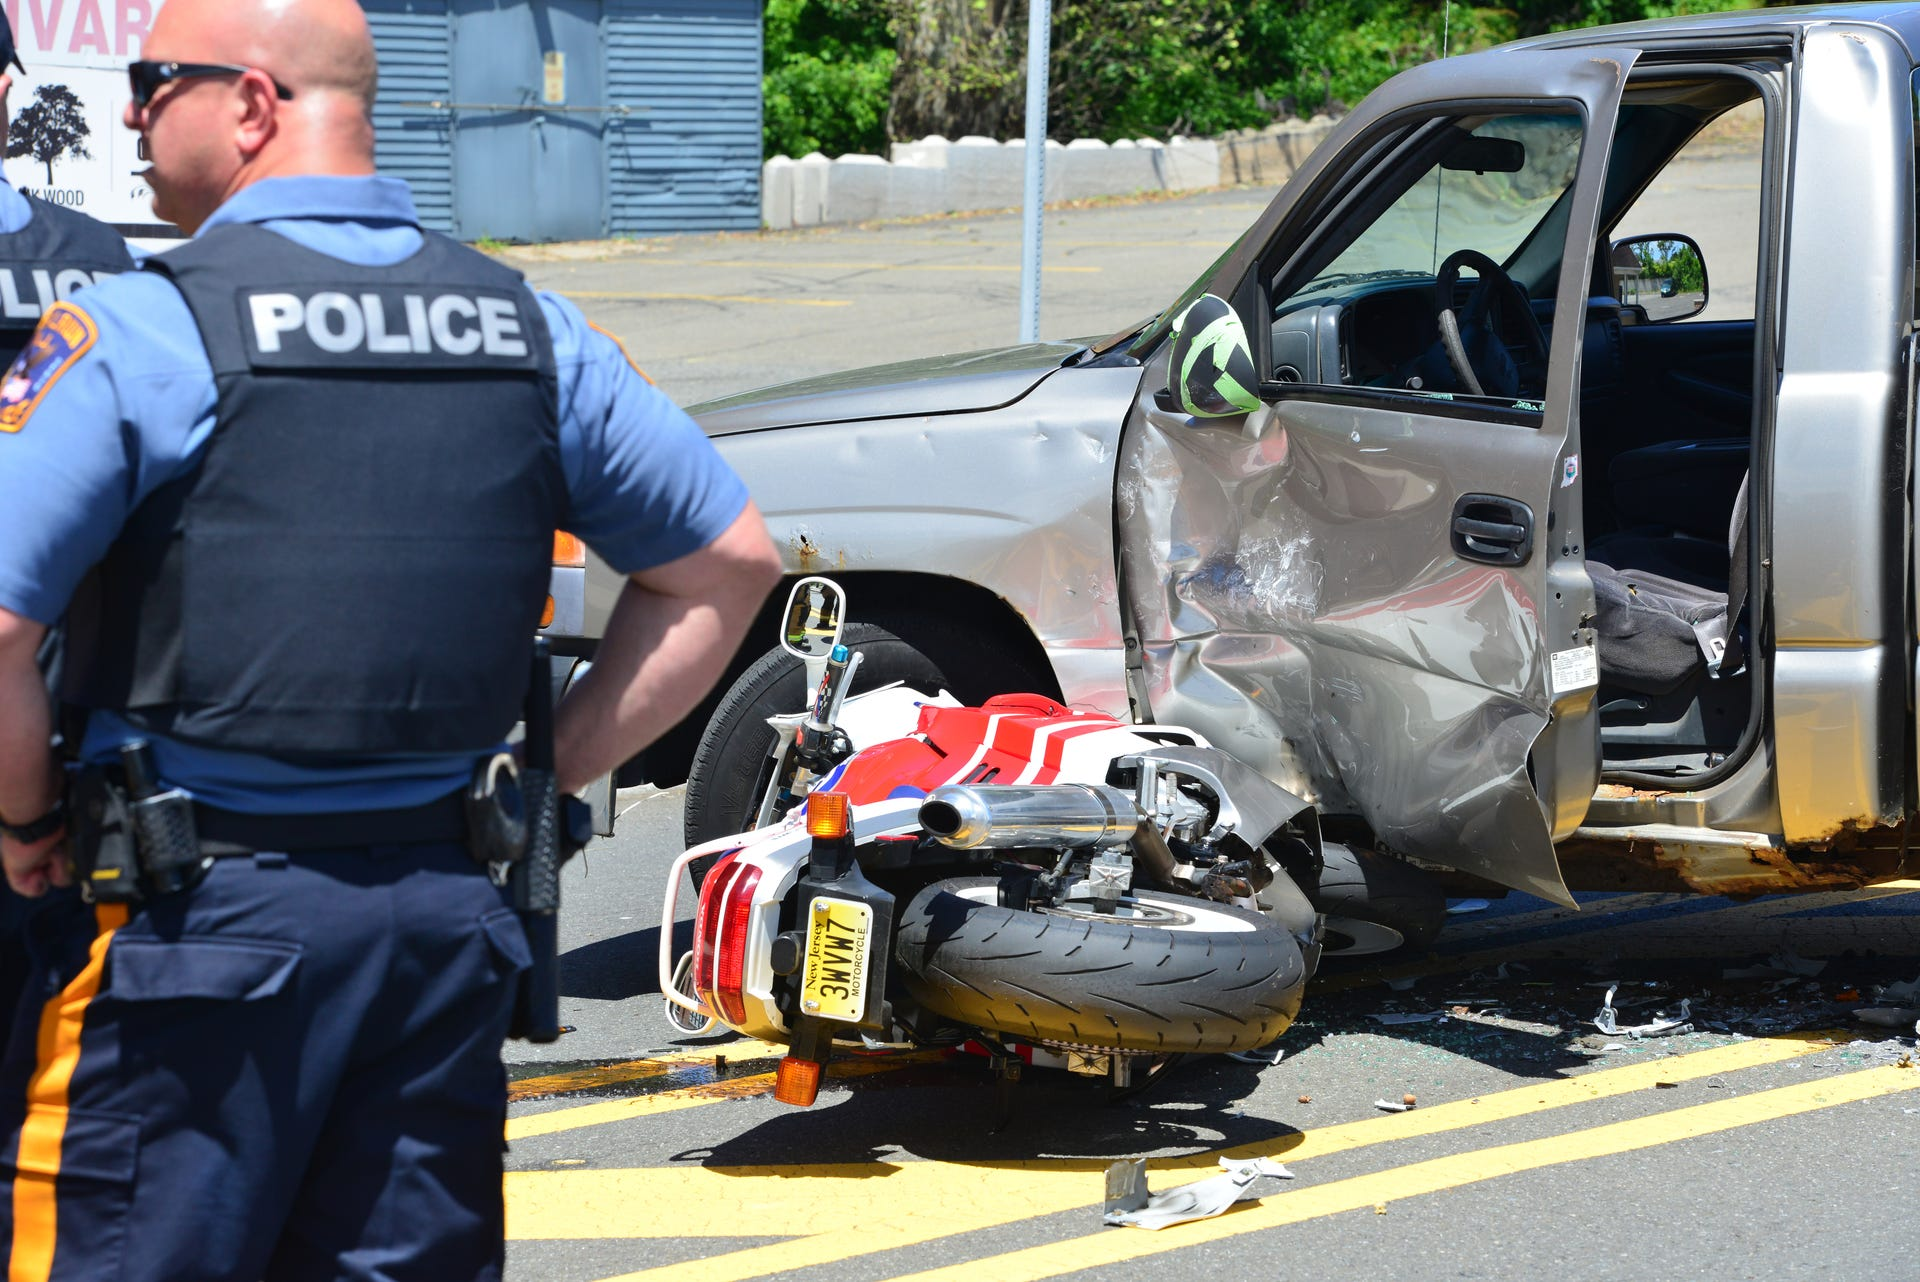 Serious Motorcycle Accident In Fair Lawn